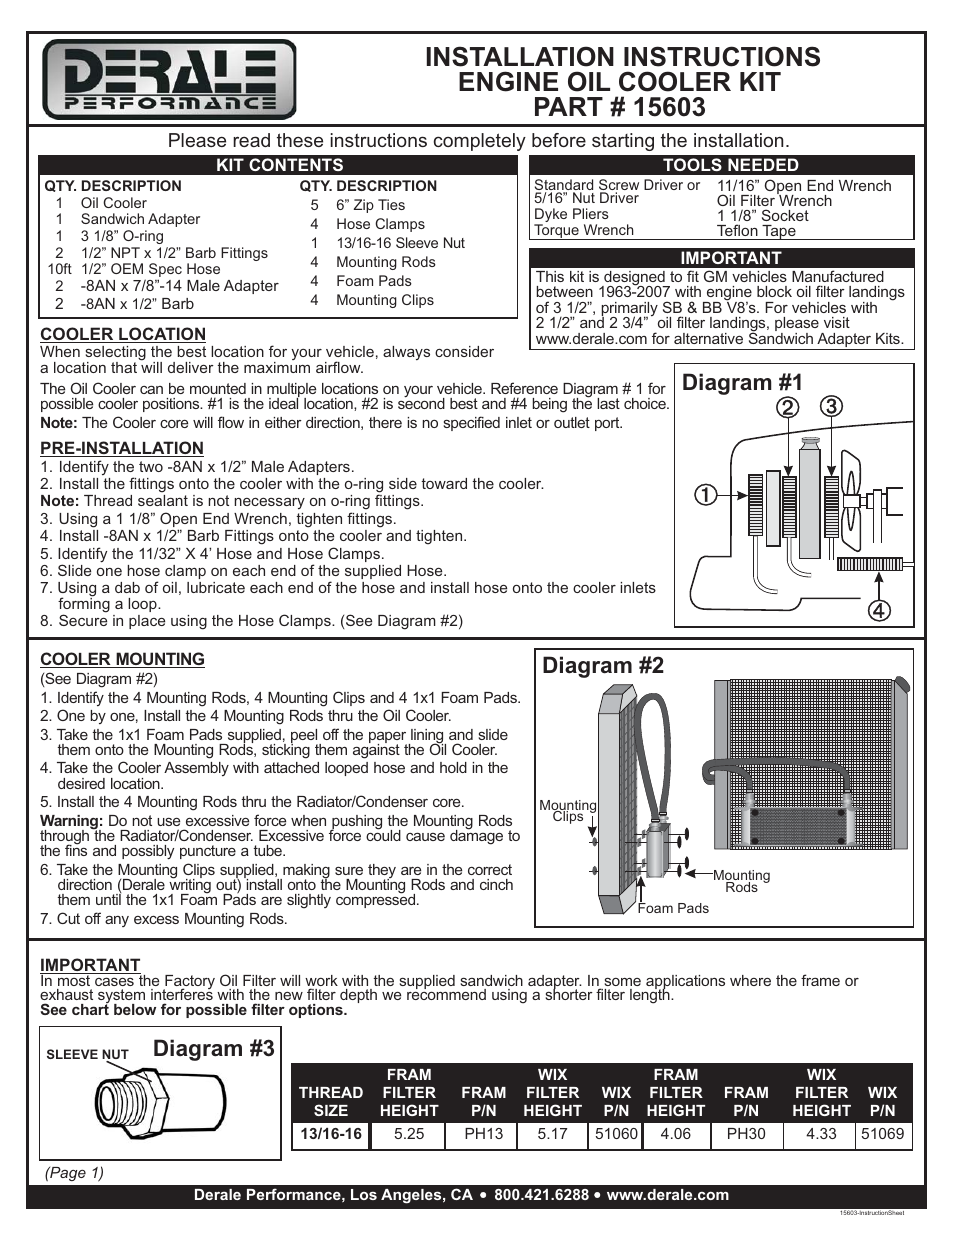 Derale Performance 10 Row Series 10000 Stack Plate GM V8 Engine Oil Cooler  Kit, Sandwich Adapter User Manual | 2 pages